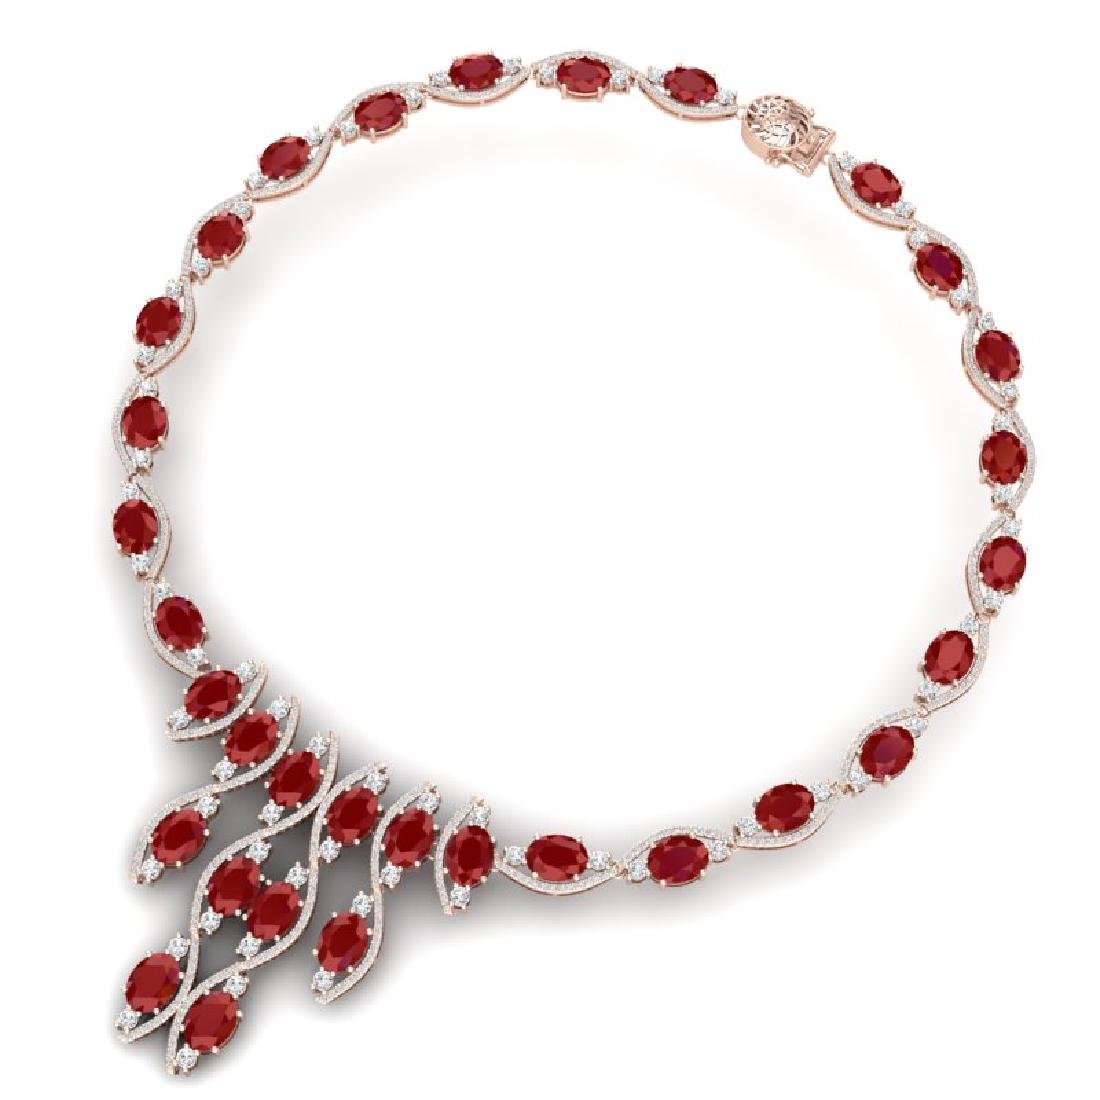 65.93 CTW Royalty Ruby & VS Diamond Necklace 18K Rose - 3